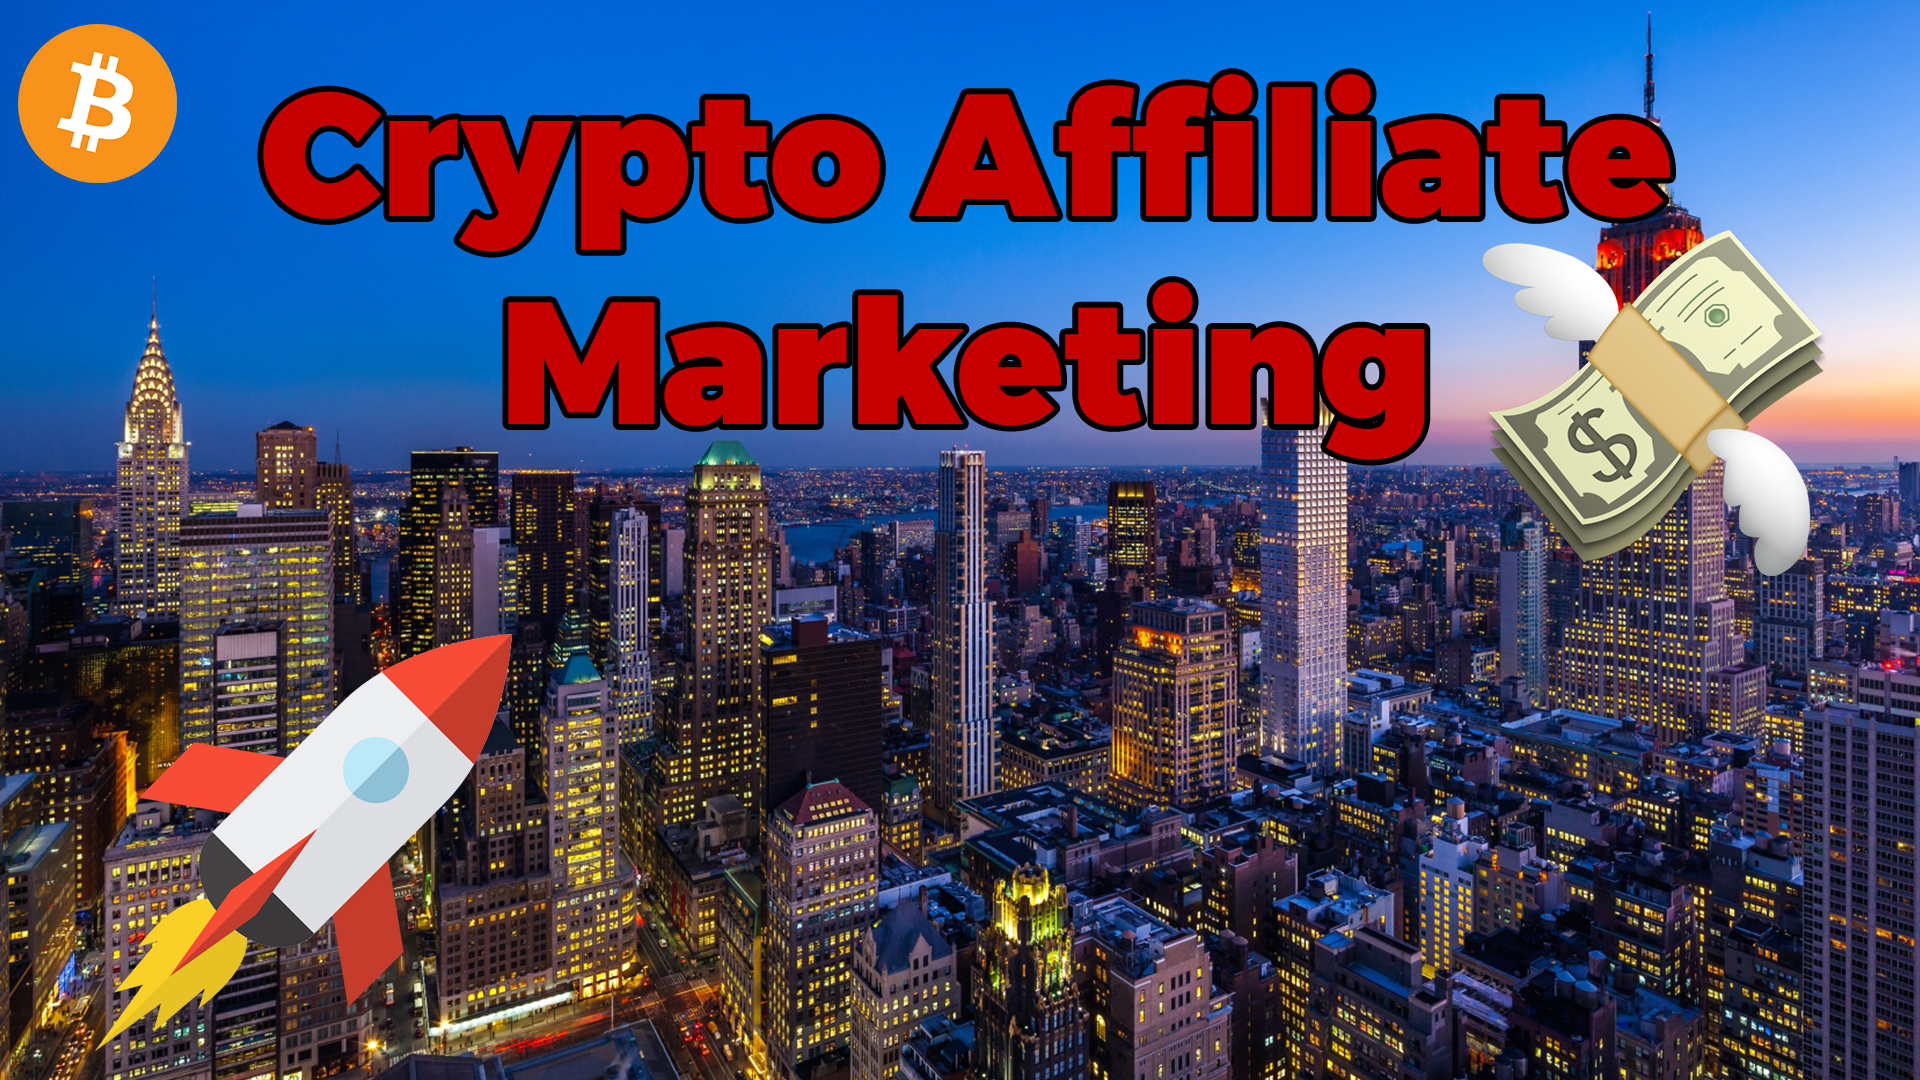 Crypto Affiliate Marketing